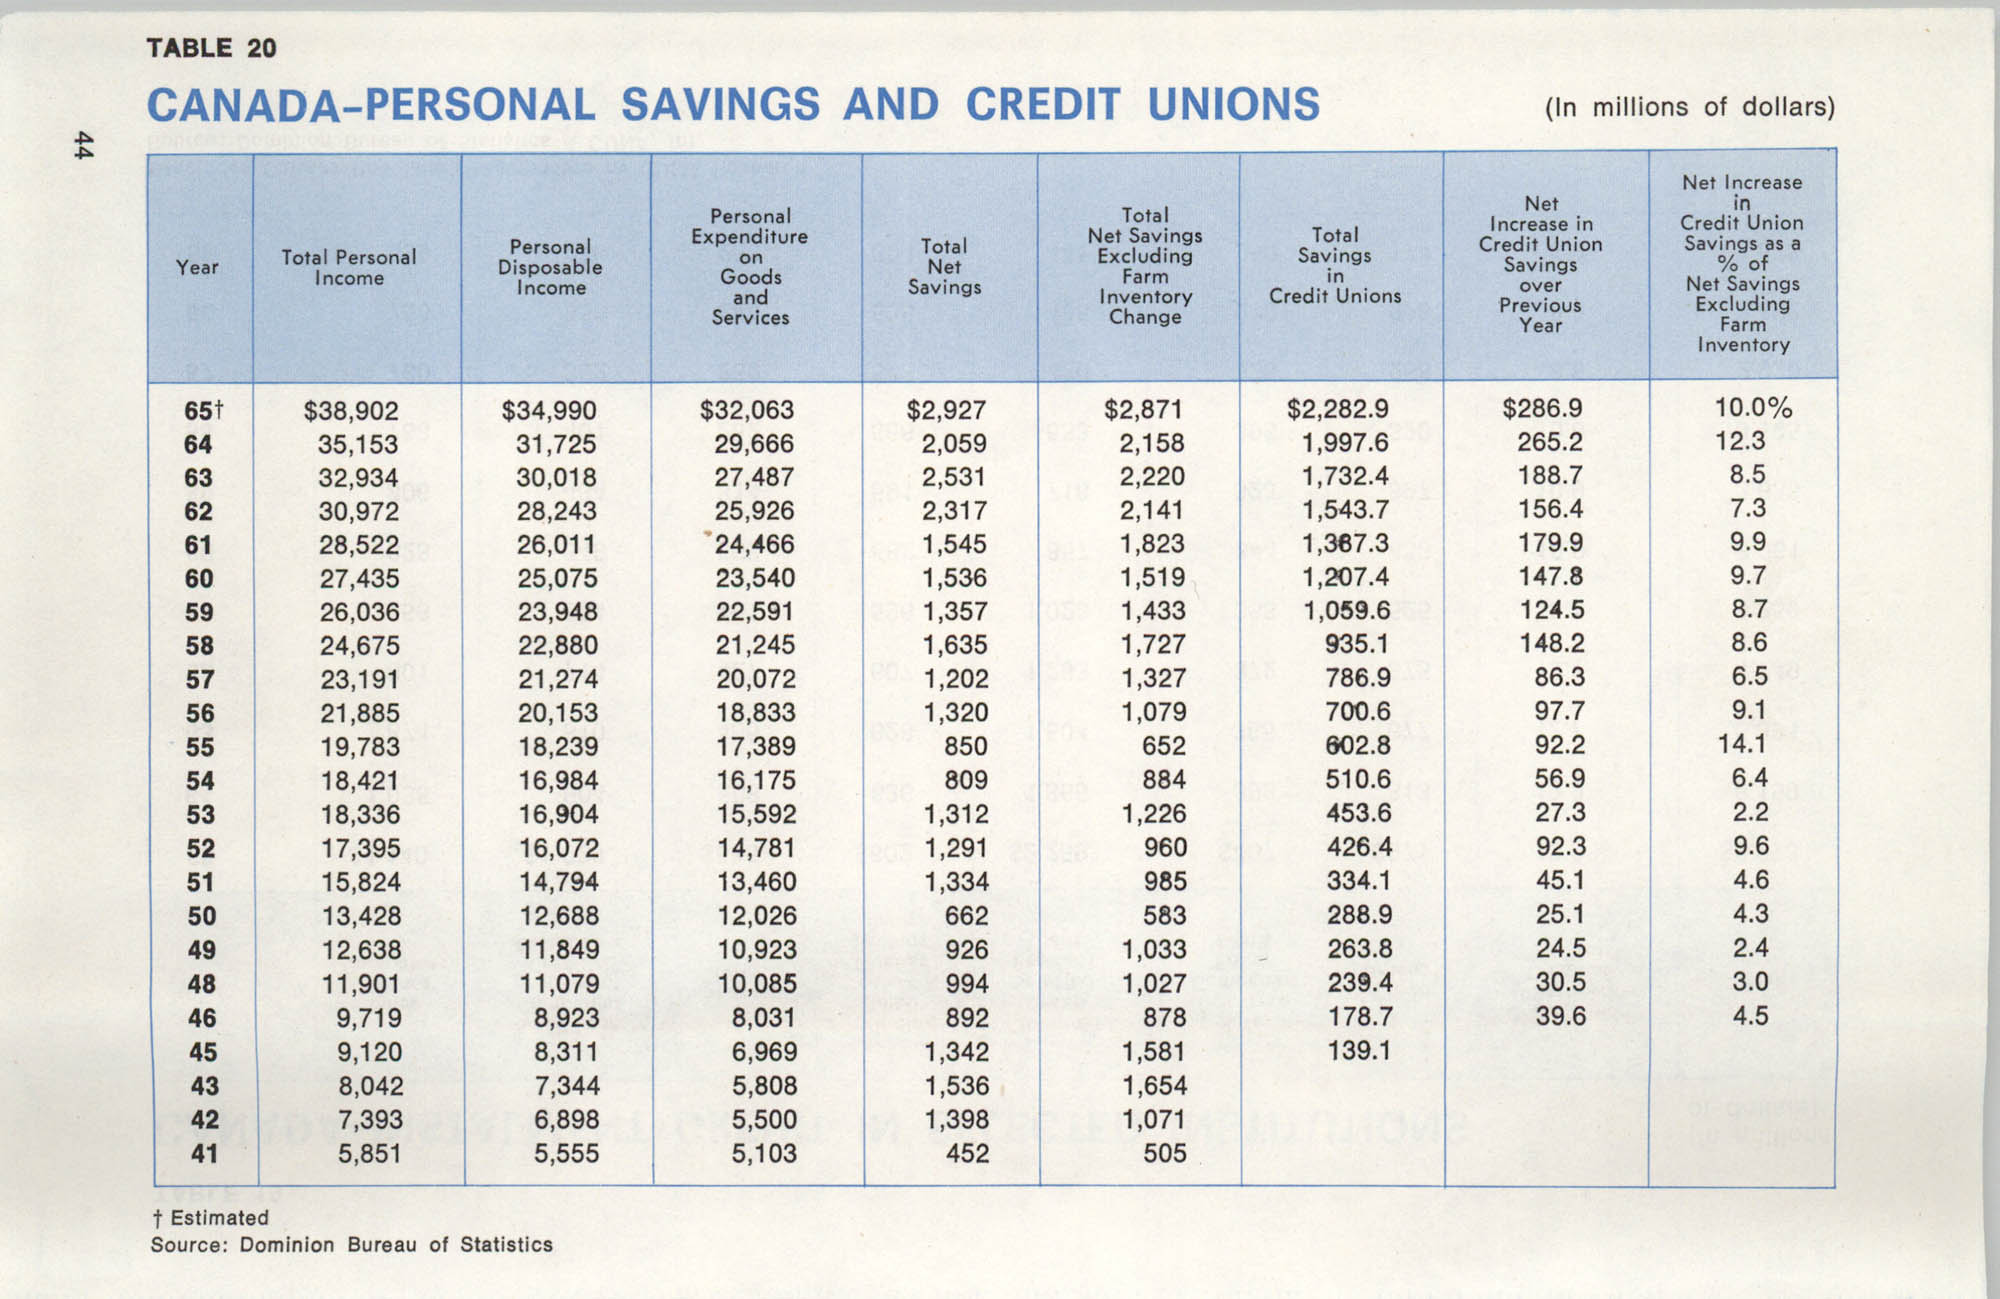 International Credit Union Yearbook, Page 44